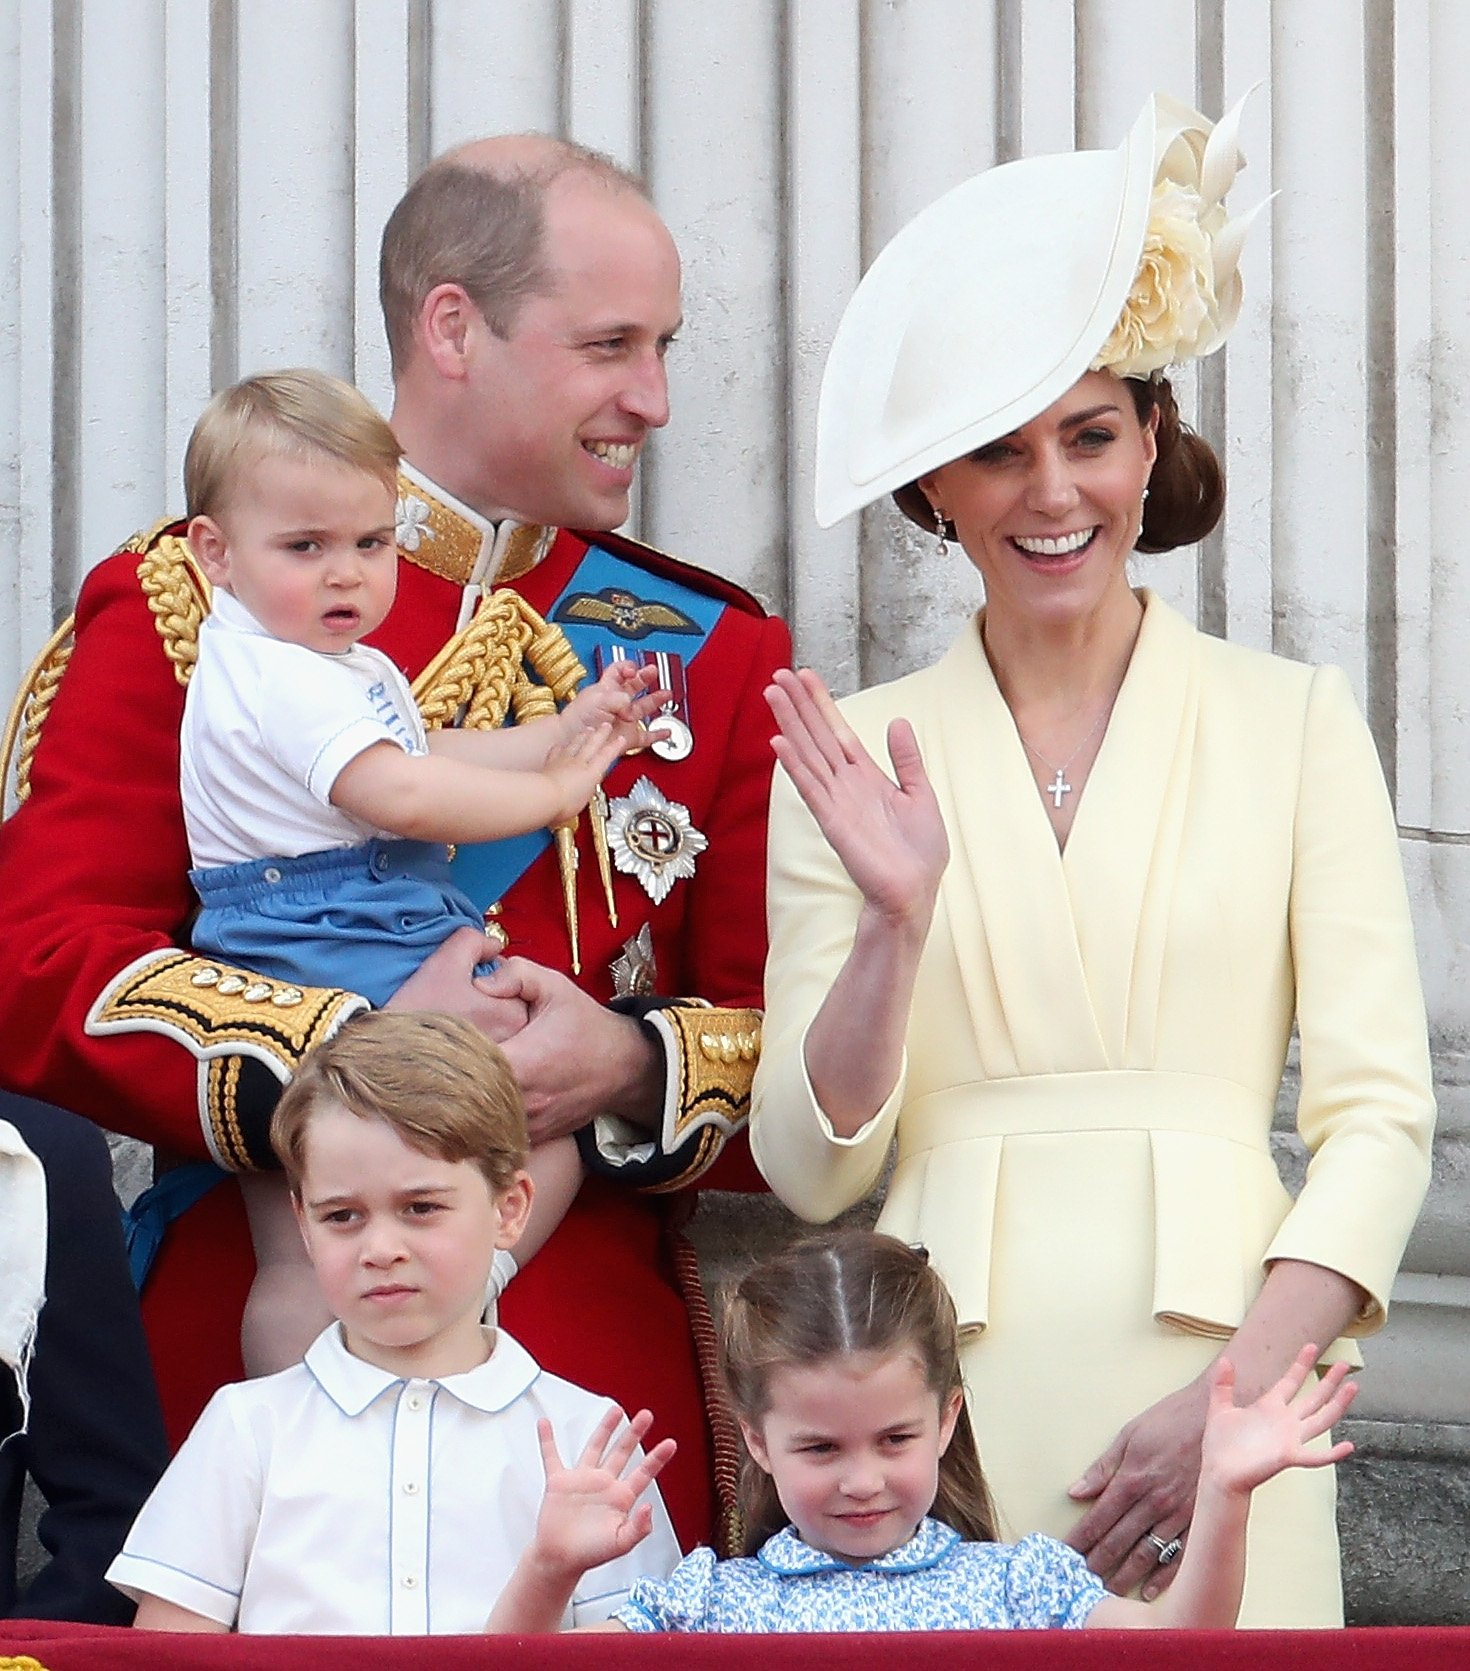 Image Credits: Getty Images / Chris Jackson   Prince William, Duke of Cambridge, Catherine, Duchess of Cambridge, Prince Louis of Cambridge, Prince George of Cambridge and Princess Charlotte of Cambridge during Trooping The Colour, the Queen's annual birthday parade, on June 8, 2019 in London, England.